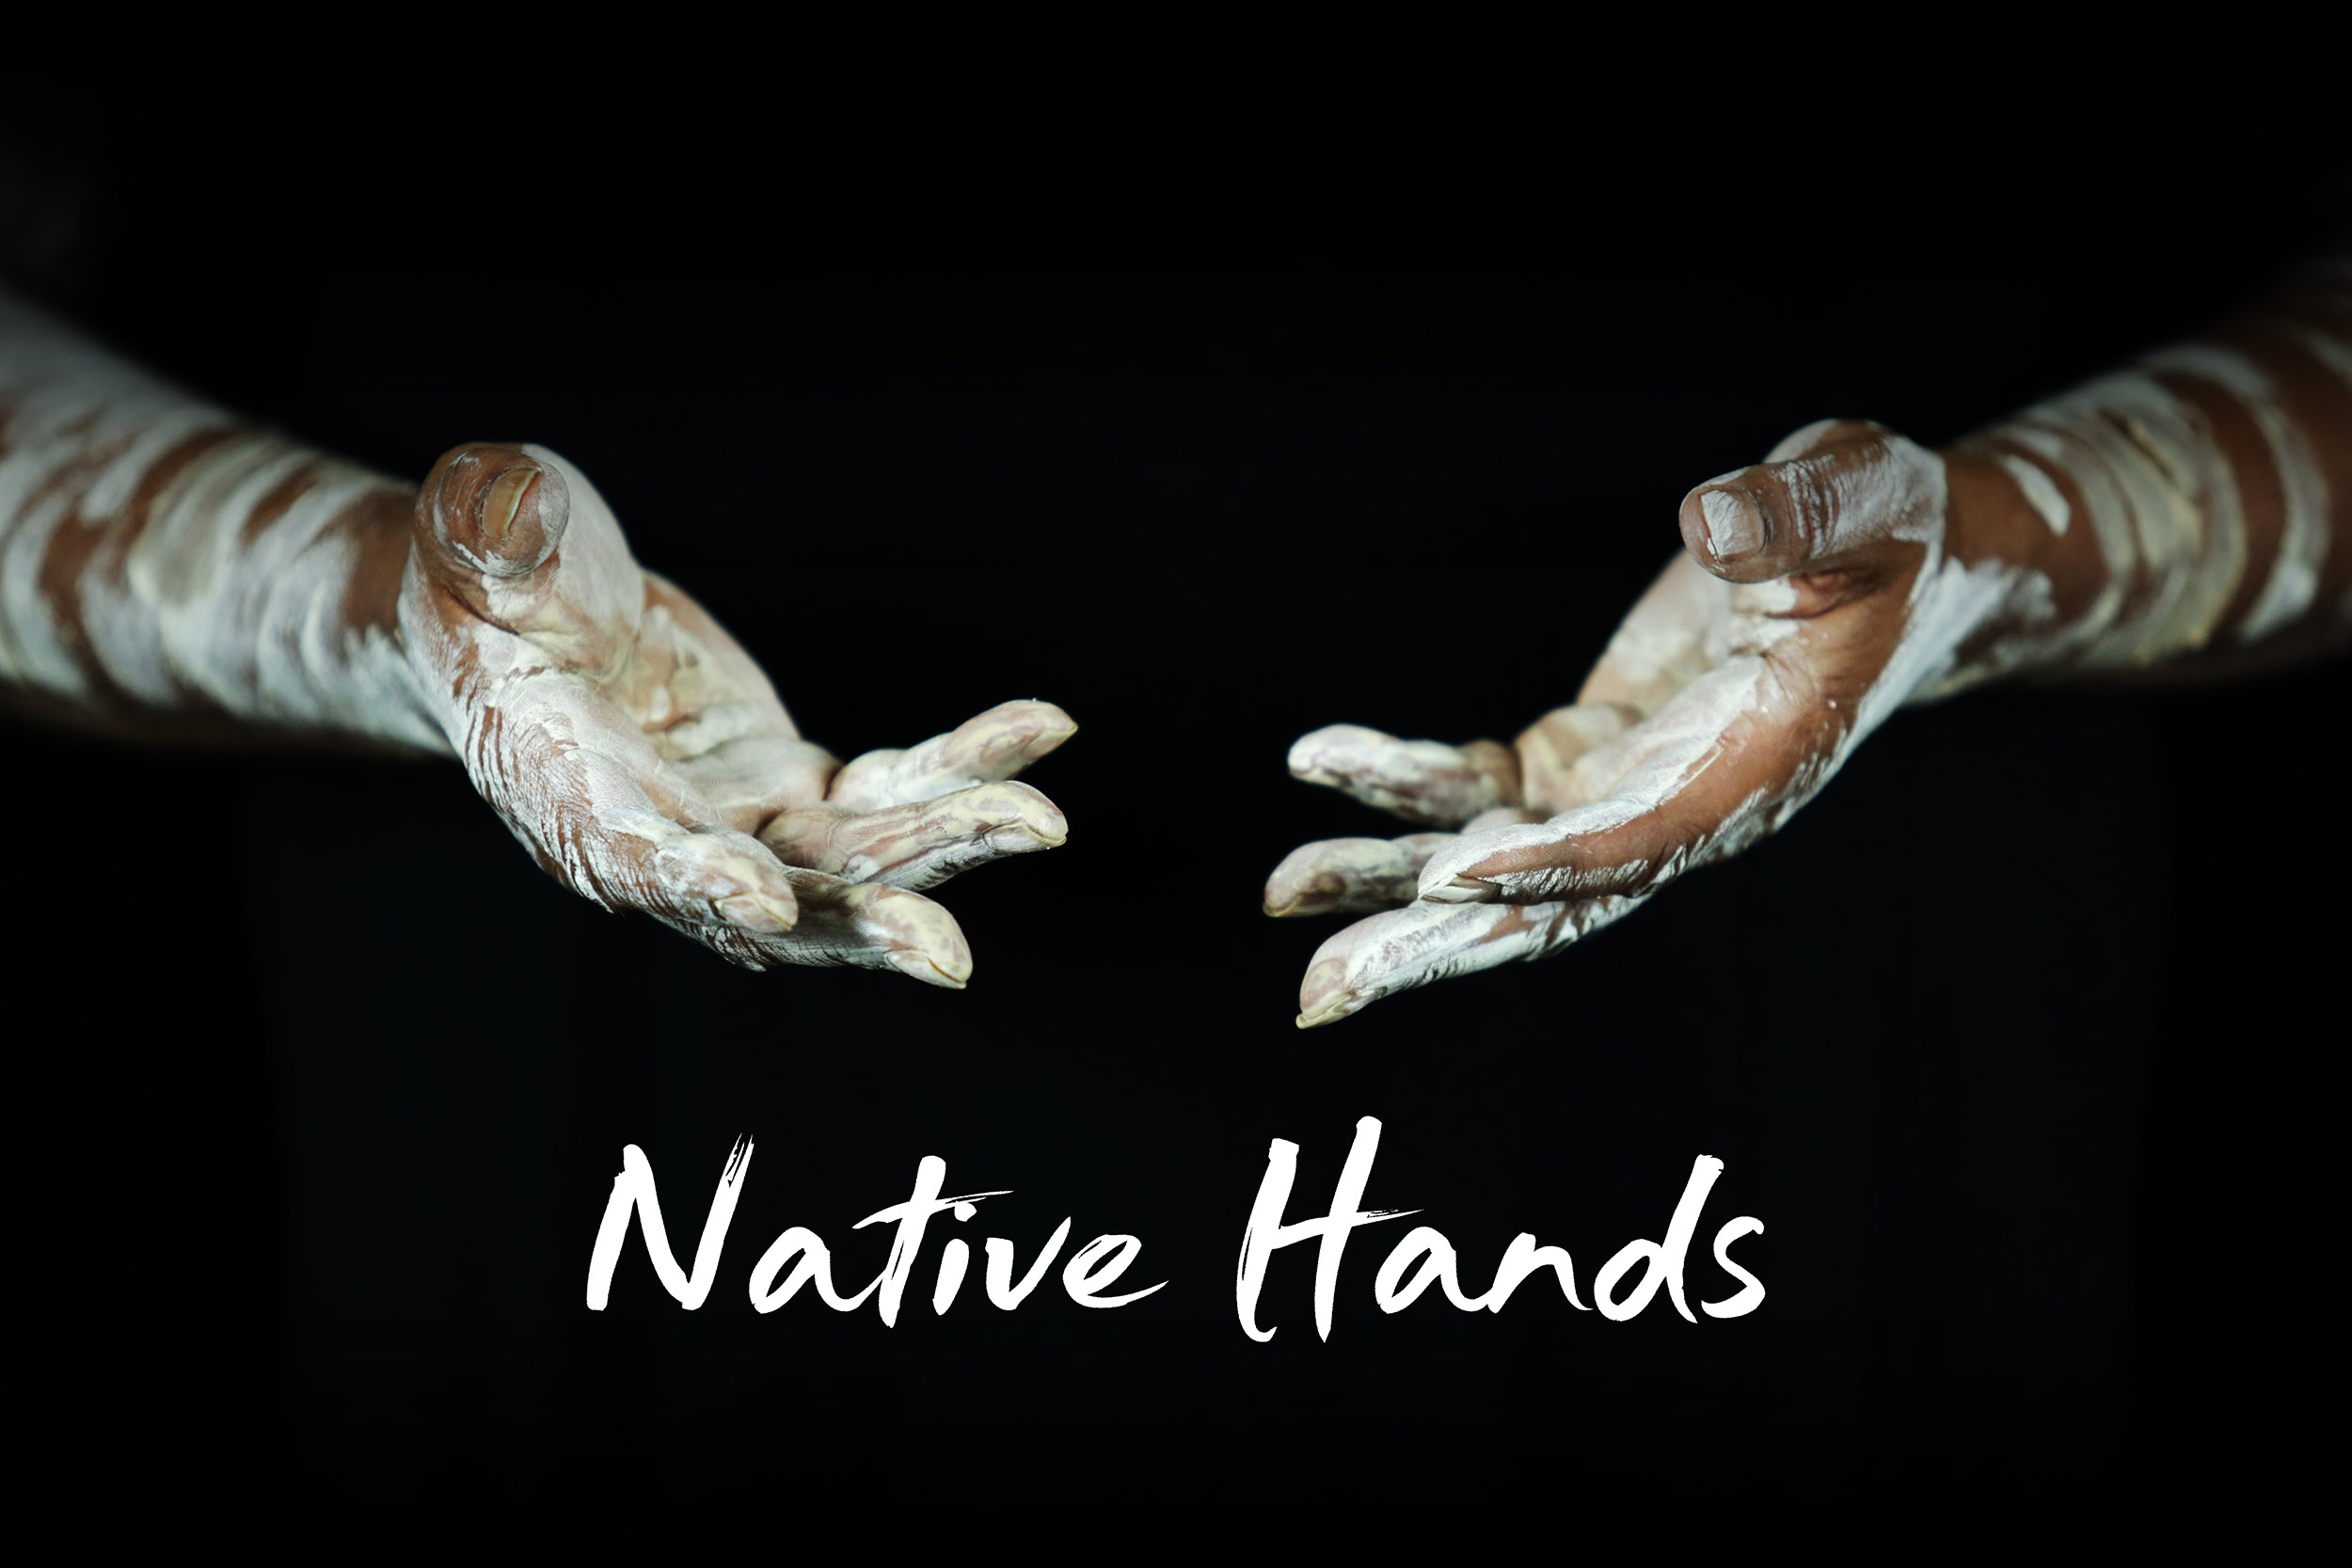 Native-Hands-Melbourne-Art-Fair.jpg